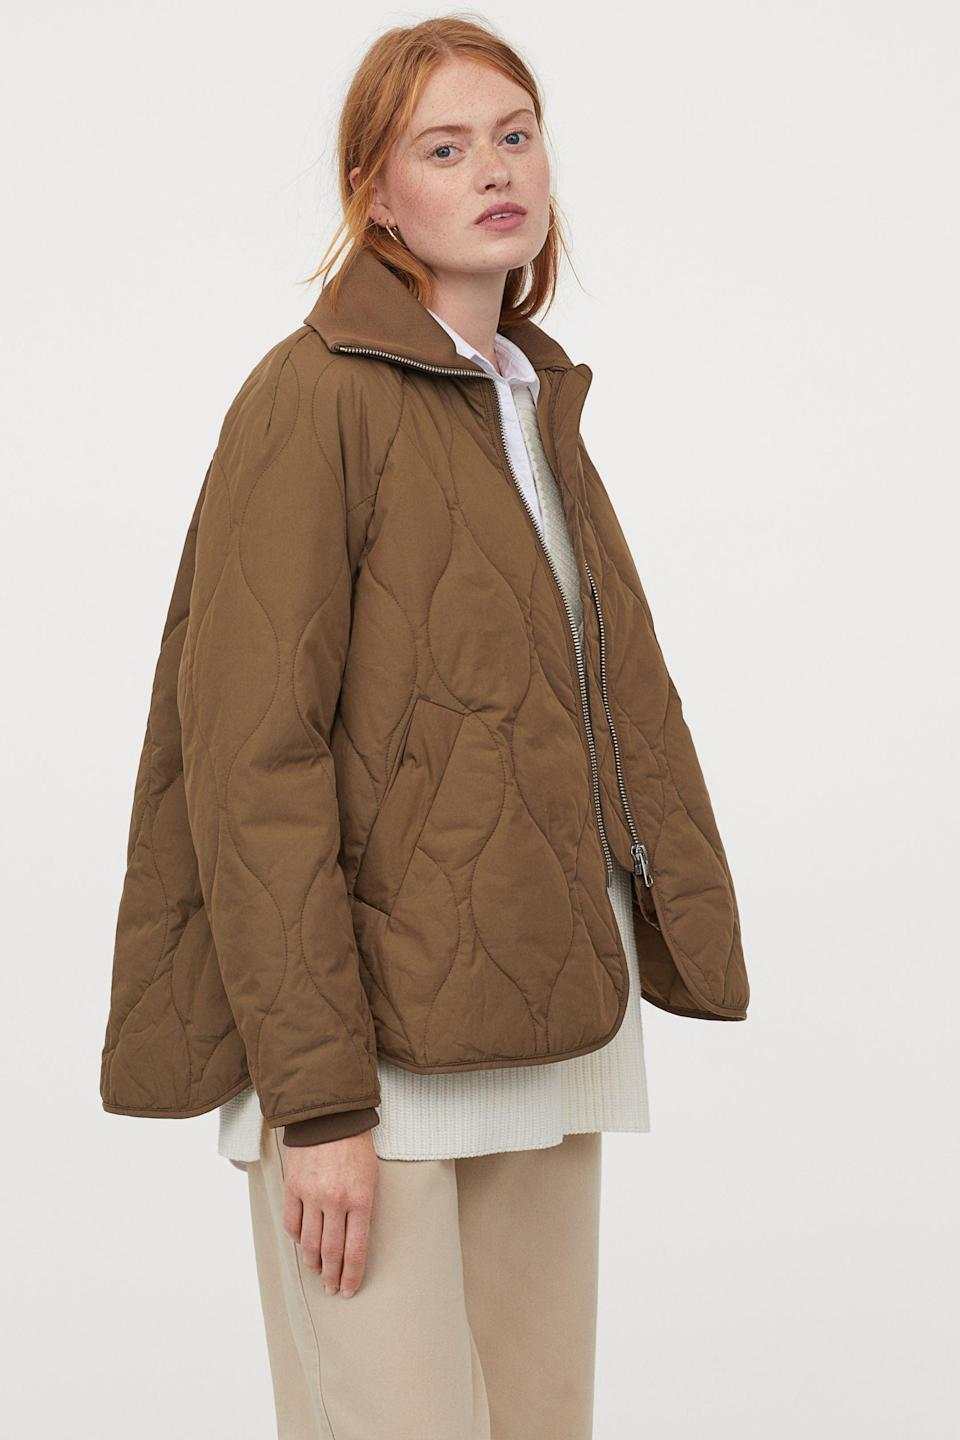 """<br><br><strong>H&M</strong> Quilted Jacket, $, available at <a href=""""https://www2.hm.com/en_gb/productpage.0914293004.html"""" rel=""""nofollow noopener"""" target=""""_blank"""" data-ylk=""""slk:H&M"""" class=""""link rapid-noclick-resp"""">H&M</a>"""